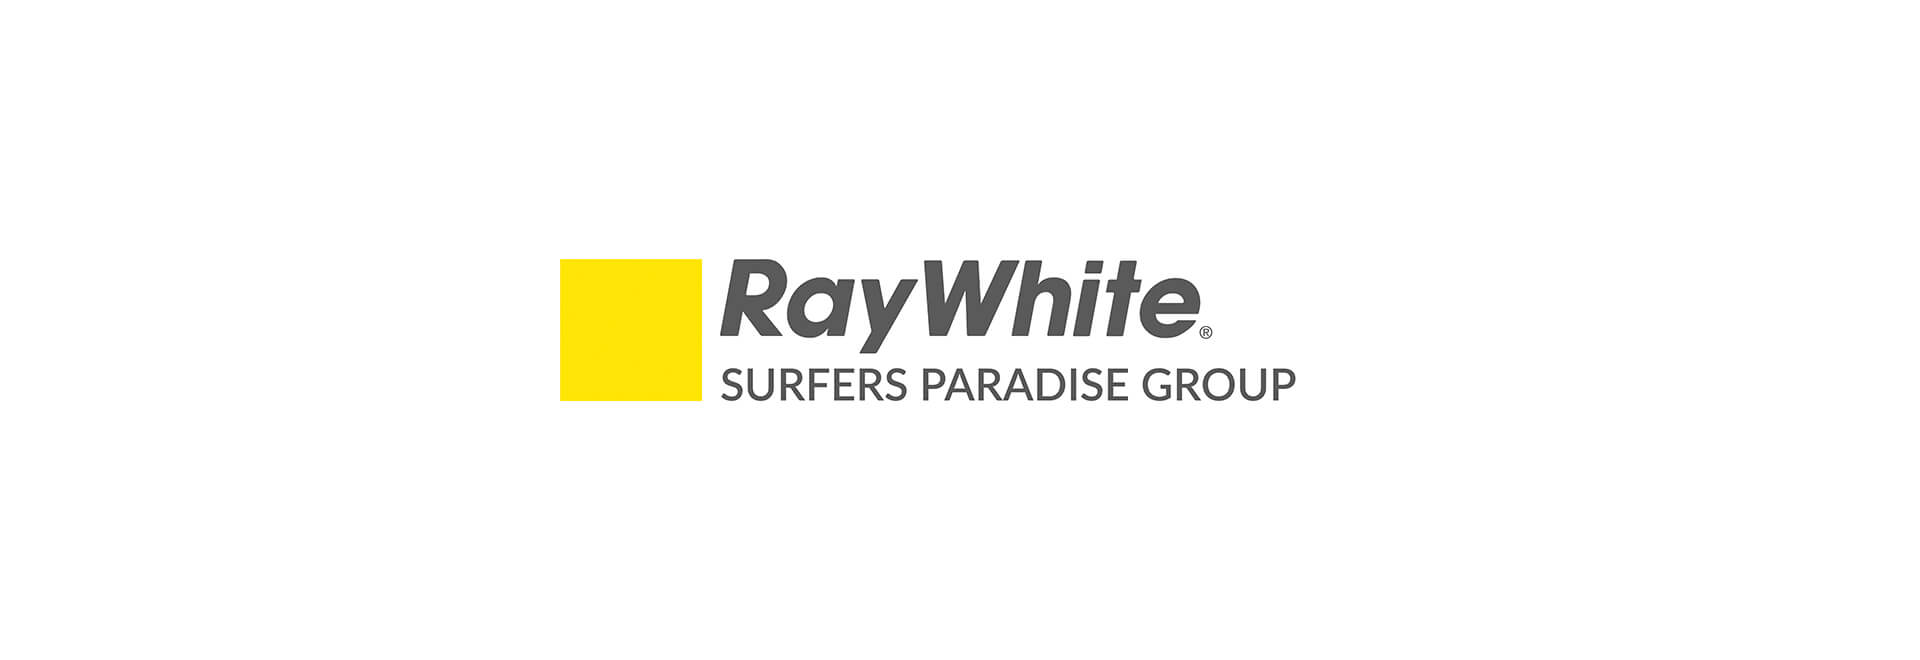 Raywhite Surfers Paradise Group Club Sponsors Surfers Paradise Surf Life Saving Club